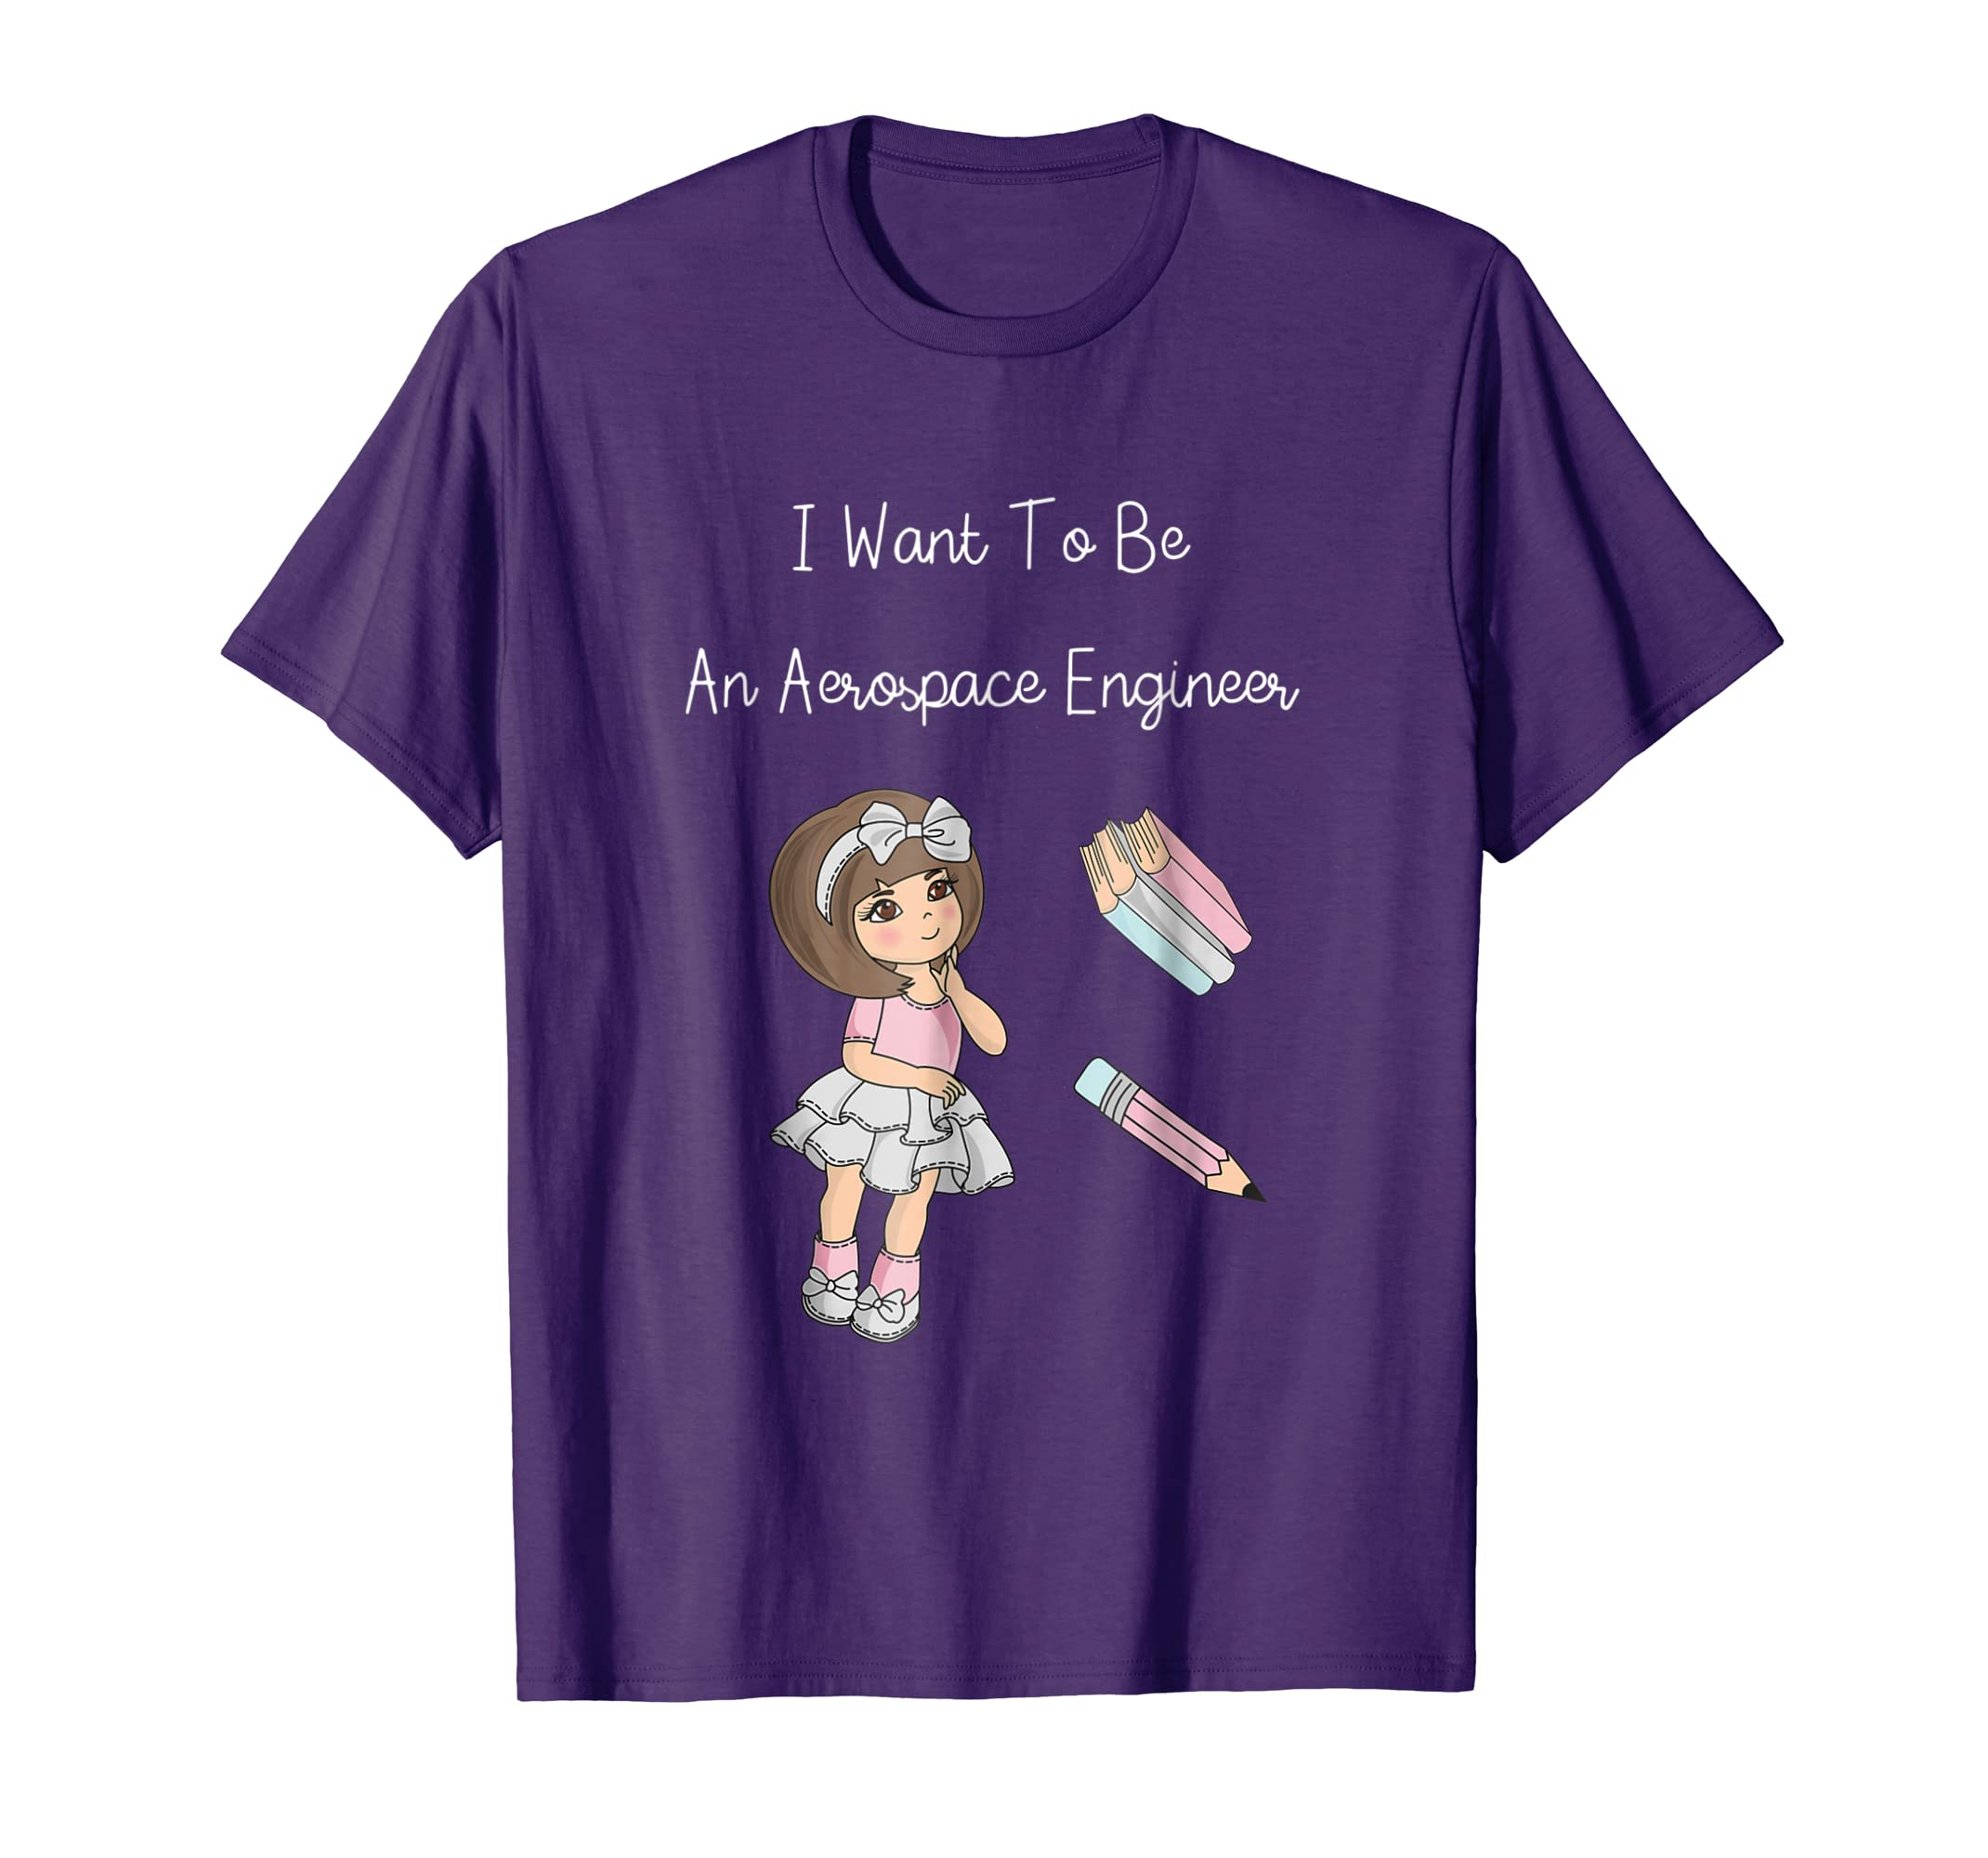 I Want to Be An Aerospace Engineer T-Shirt Funny Goal Girls-Rose